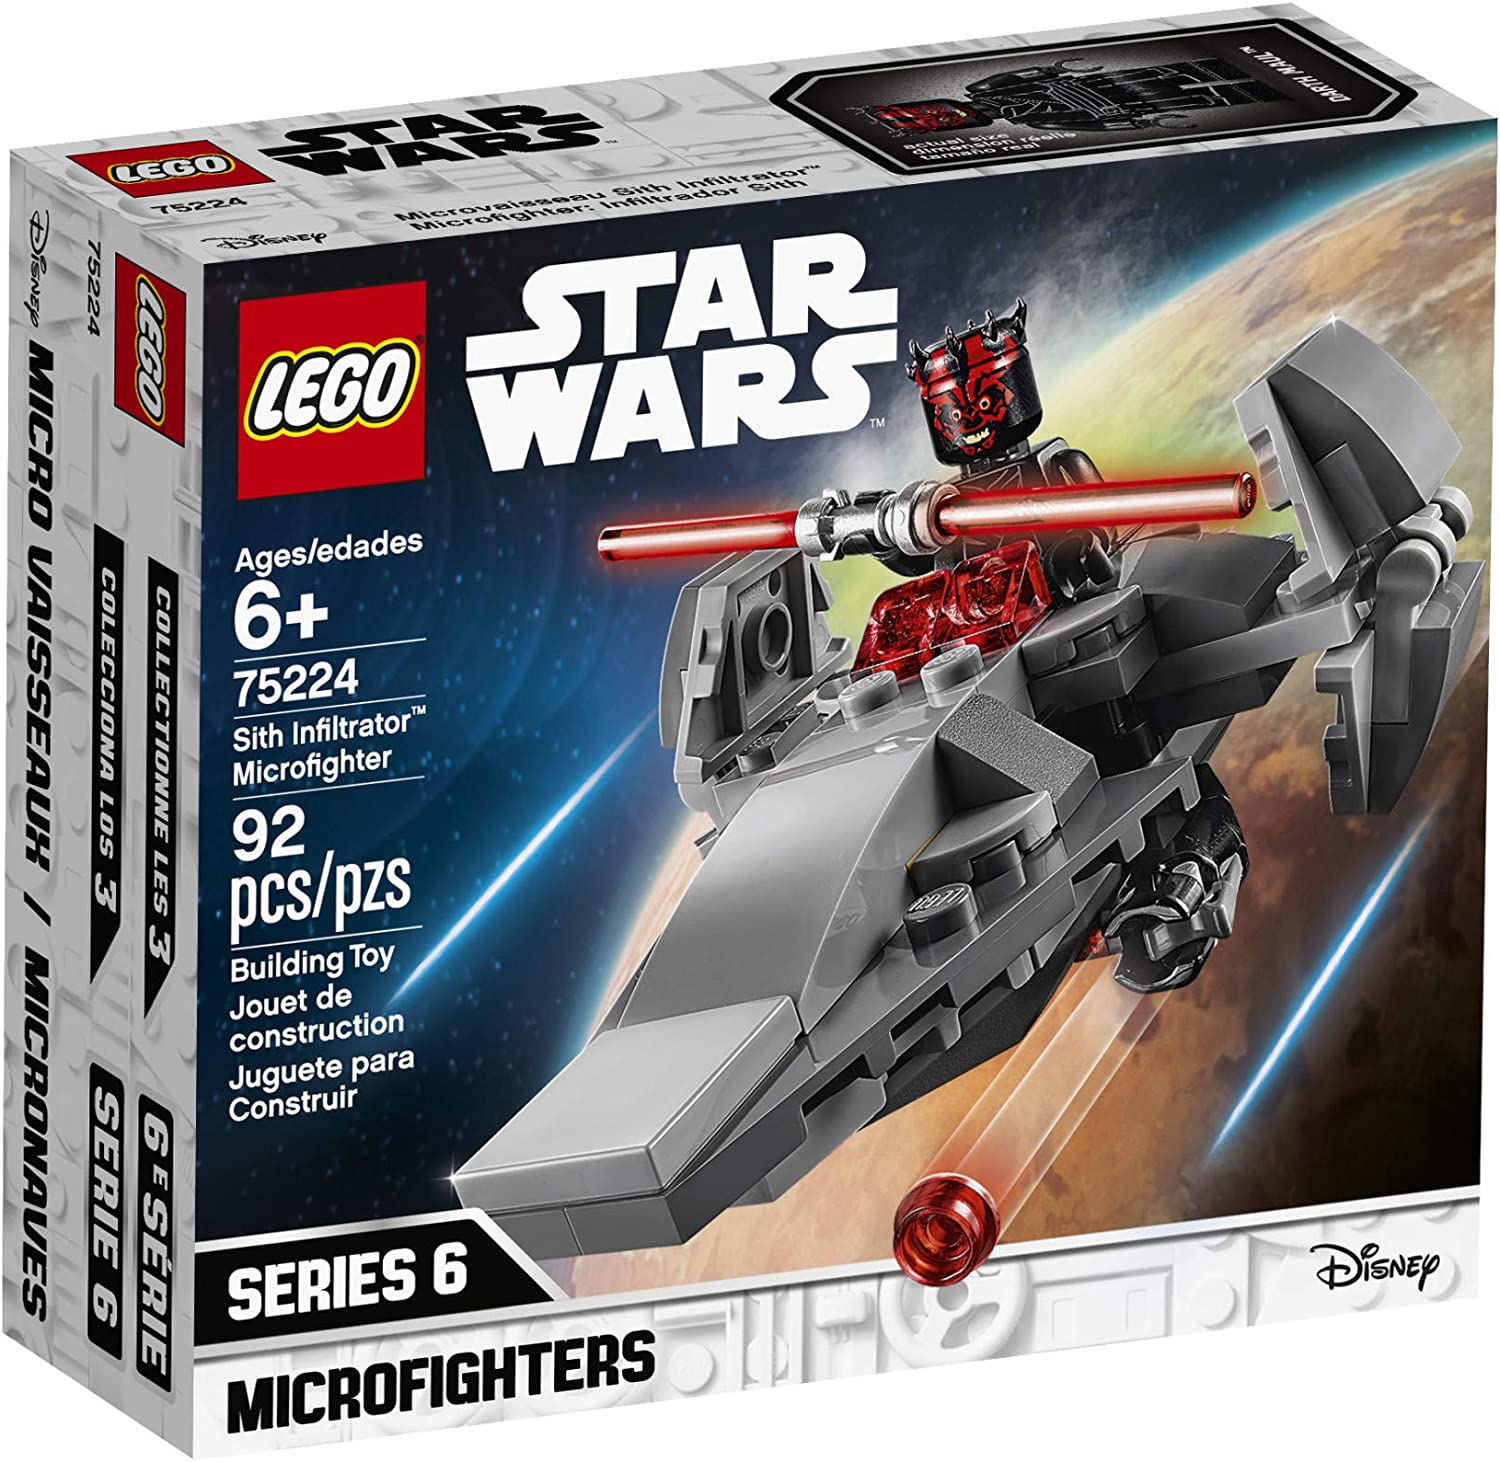 LEGO Star Wars Sith Infiltrator Microfighter 75224 Building Kit 92 Pieces